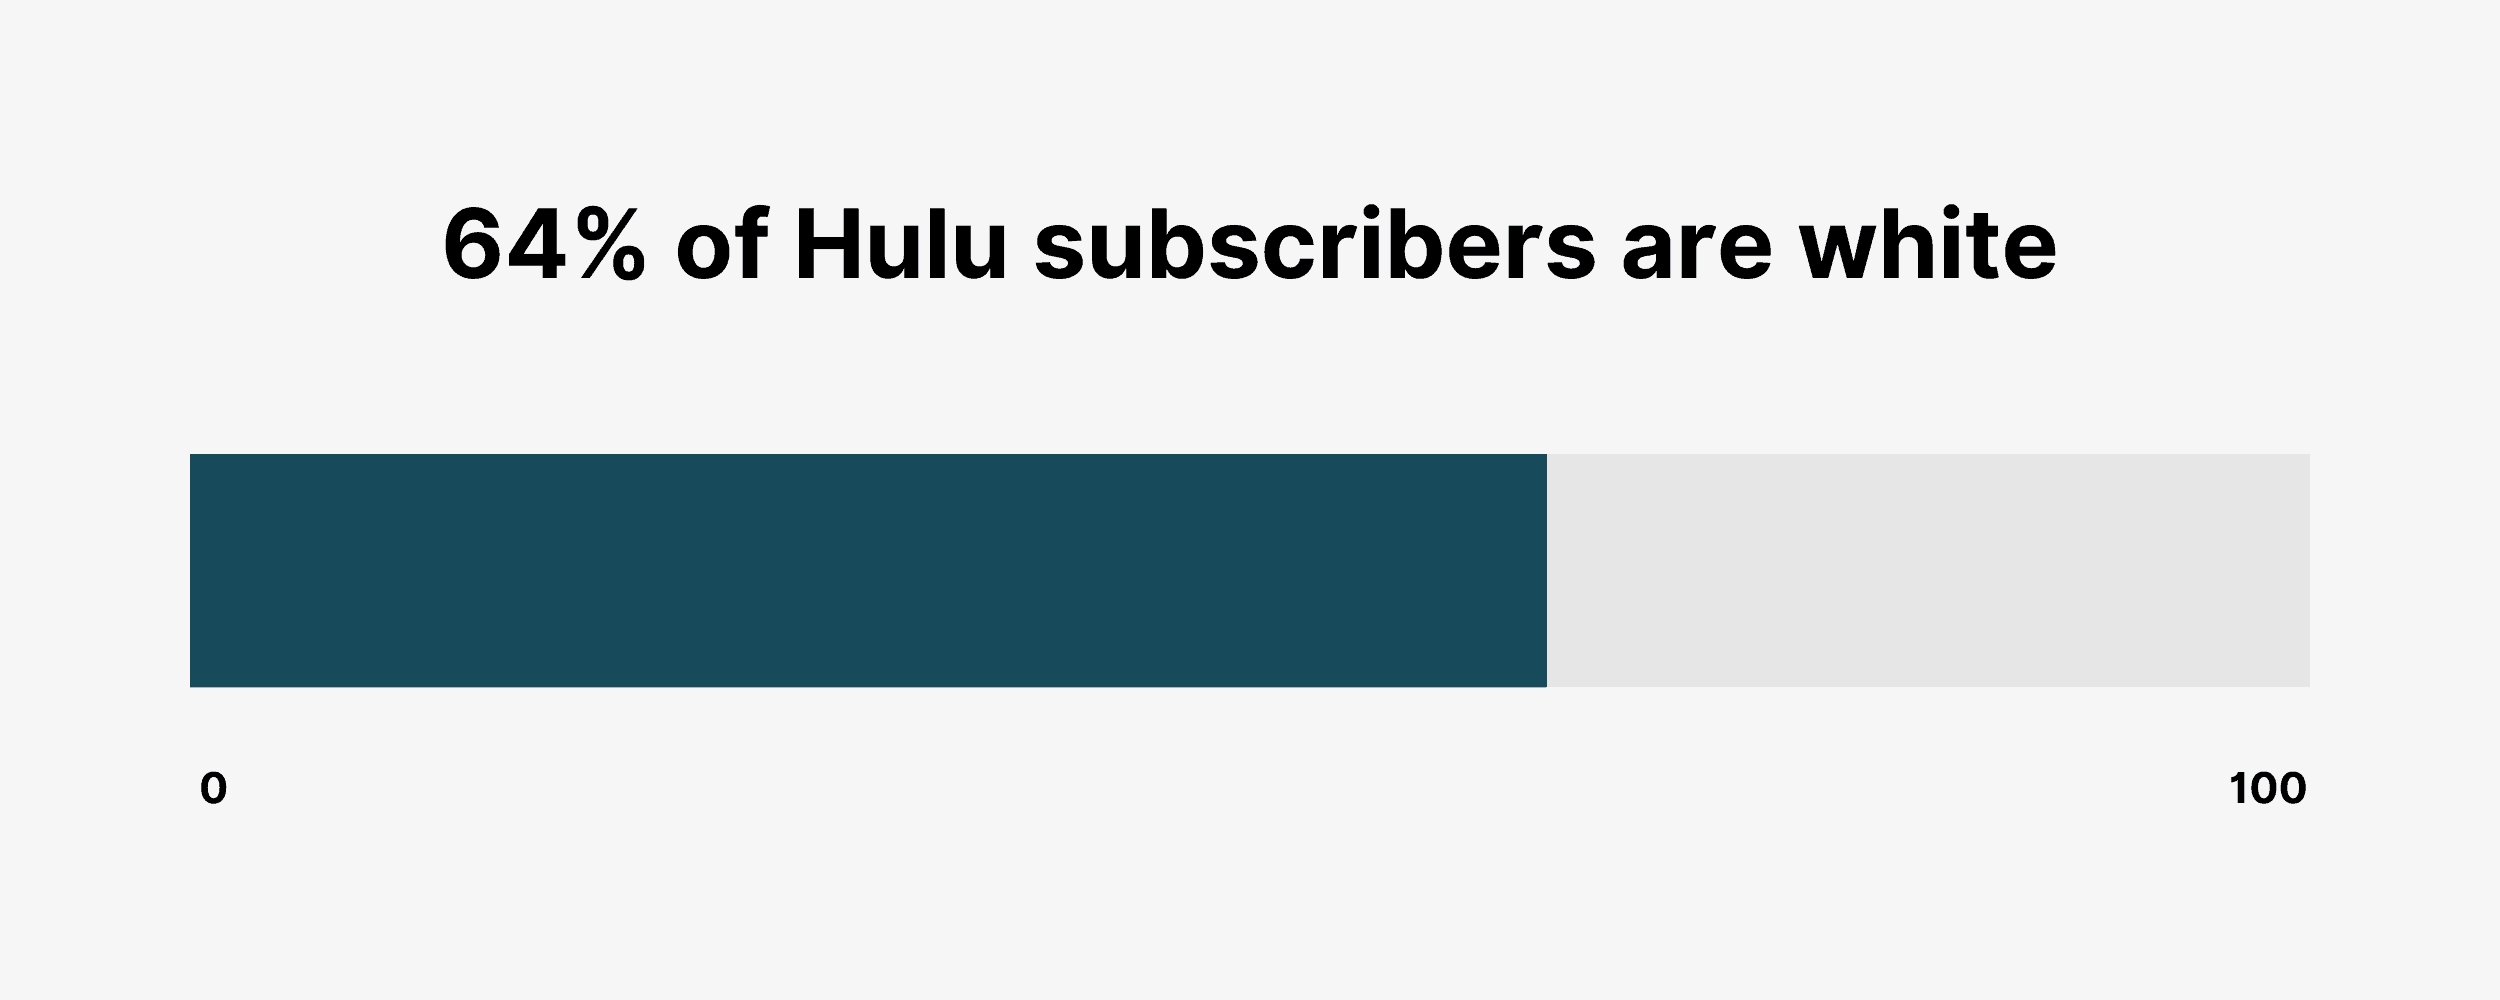 64% of Hulu subscribers are white